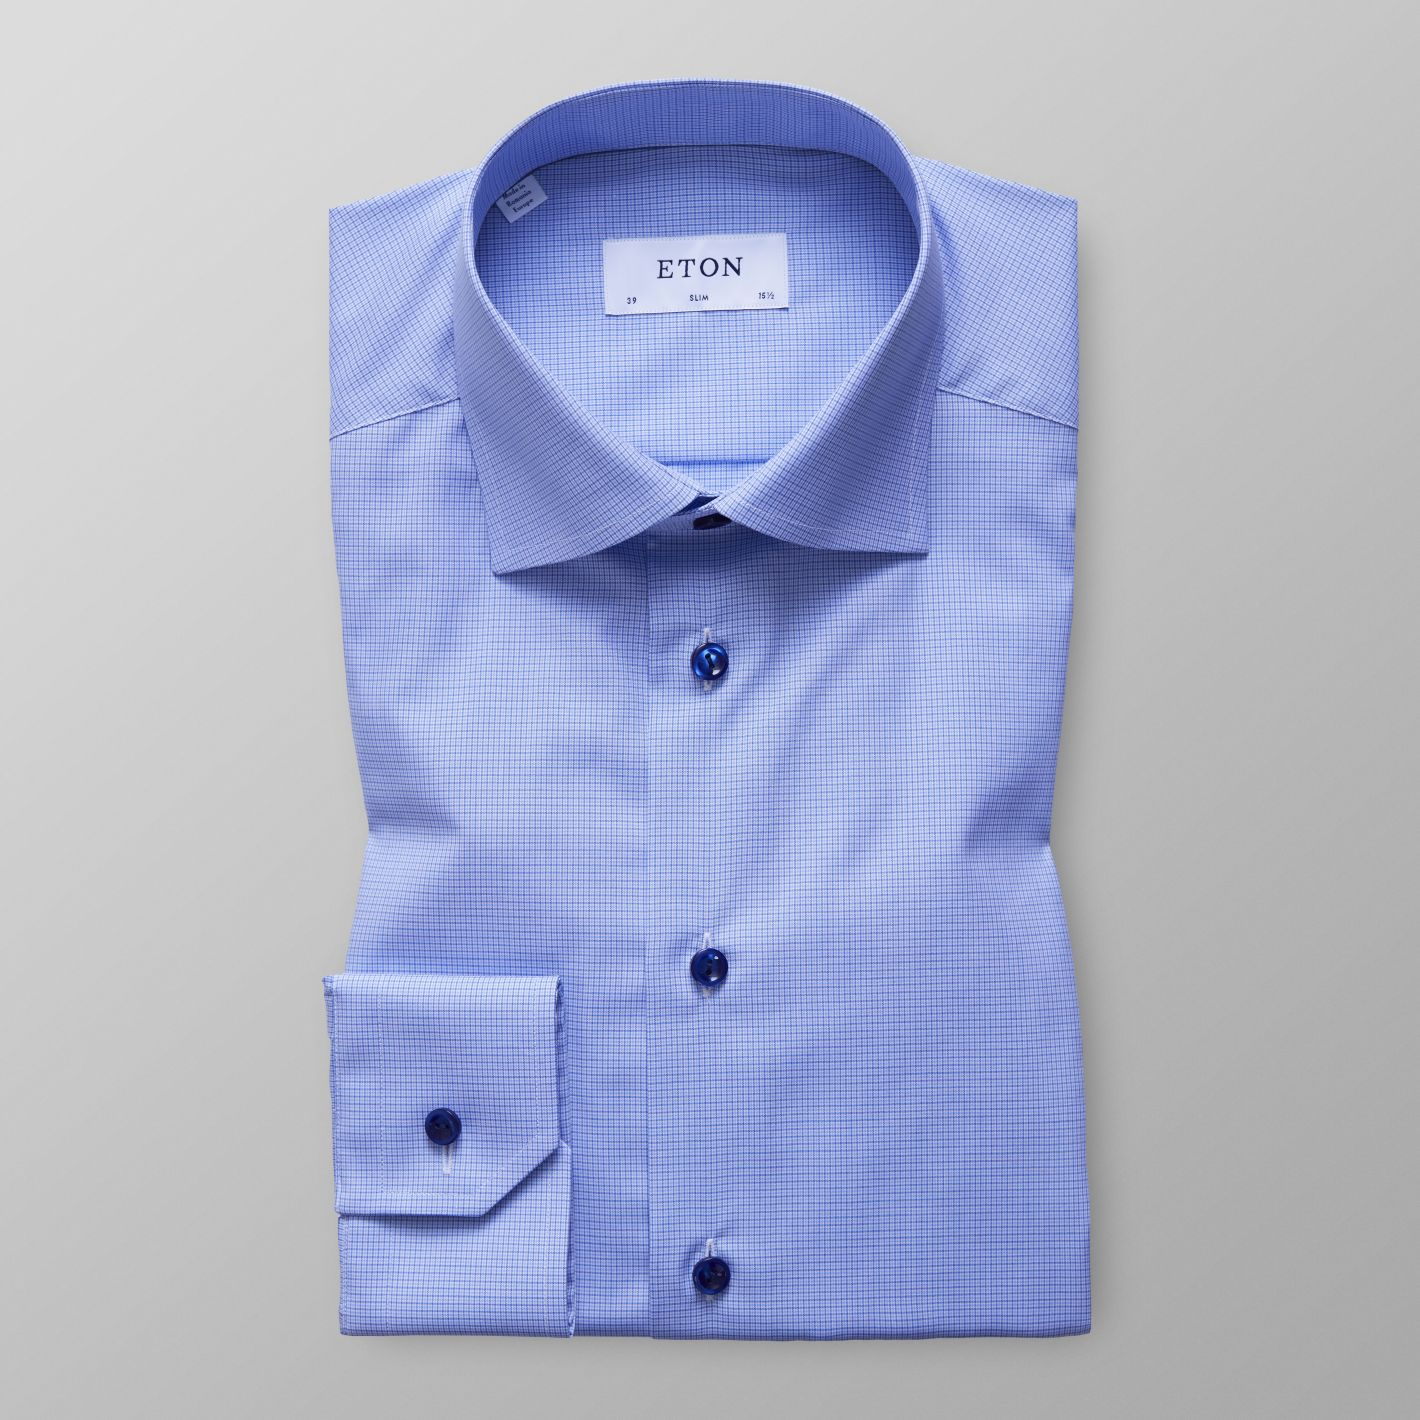 68af48a89506 Blue Check Poplin Shirt - Slim fit | Eton Shirts Canada